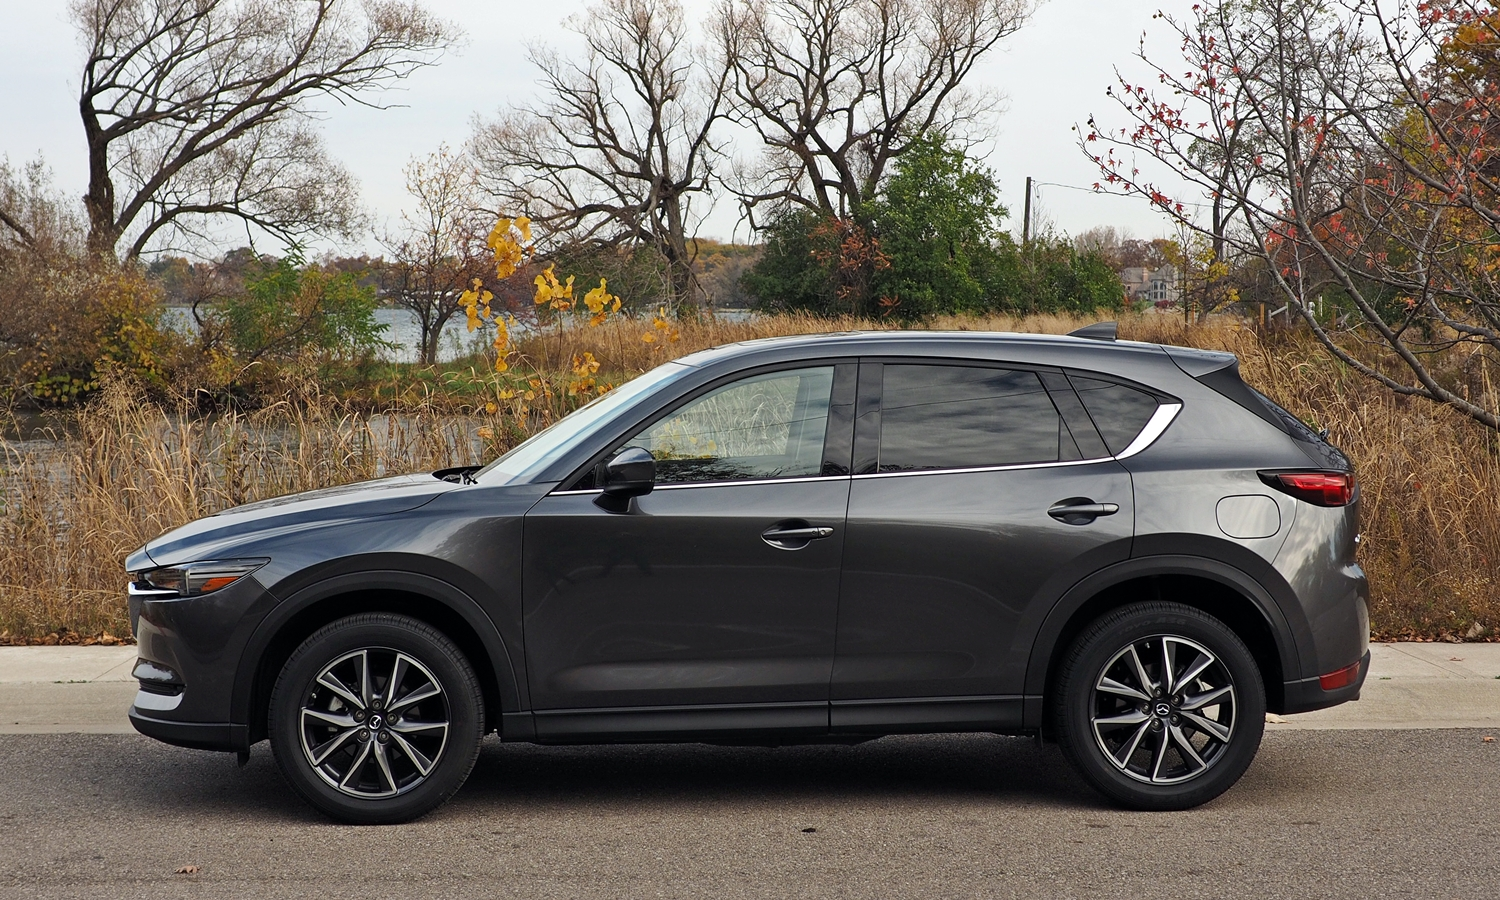 Mazda CX-5 Photos: 2017 Mazda CX-5 side view